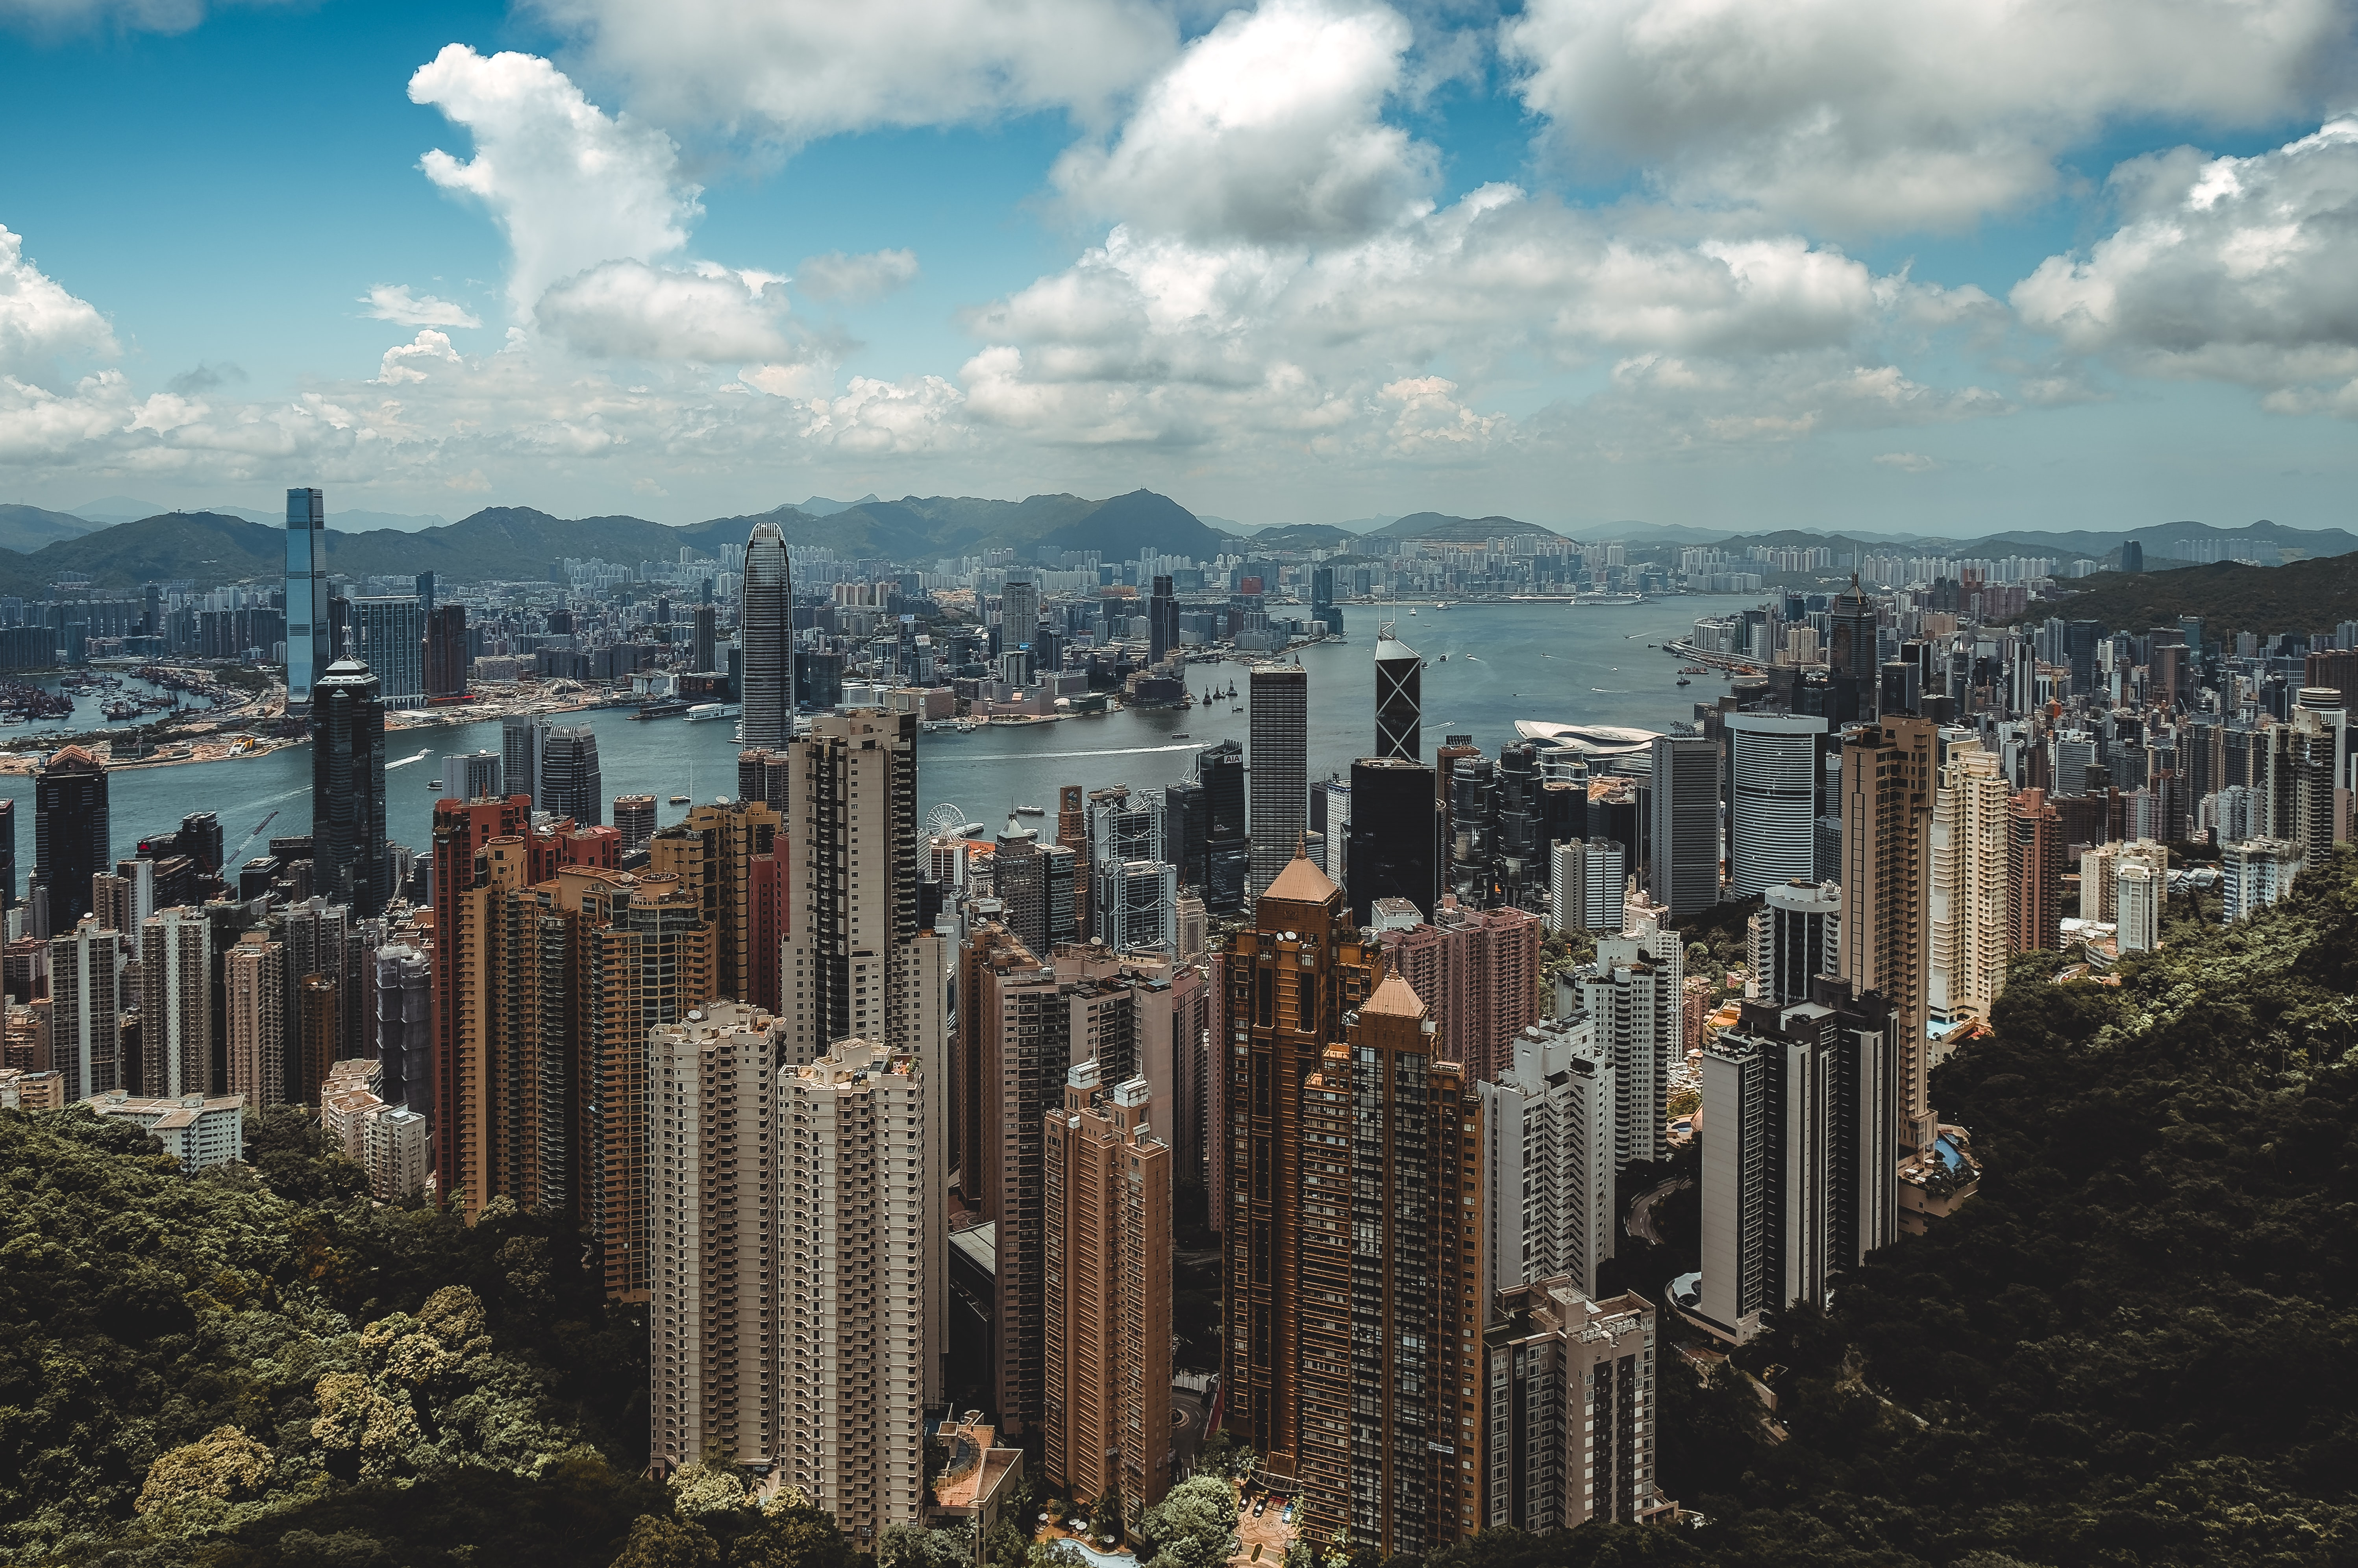 Image of Hong Kong needs to enhance competitiveness to seek win-win results with Shenzhen: HKSAR chief executive